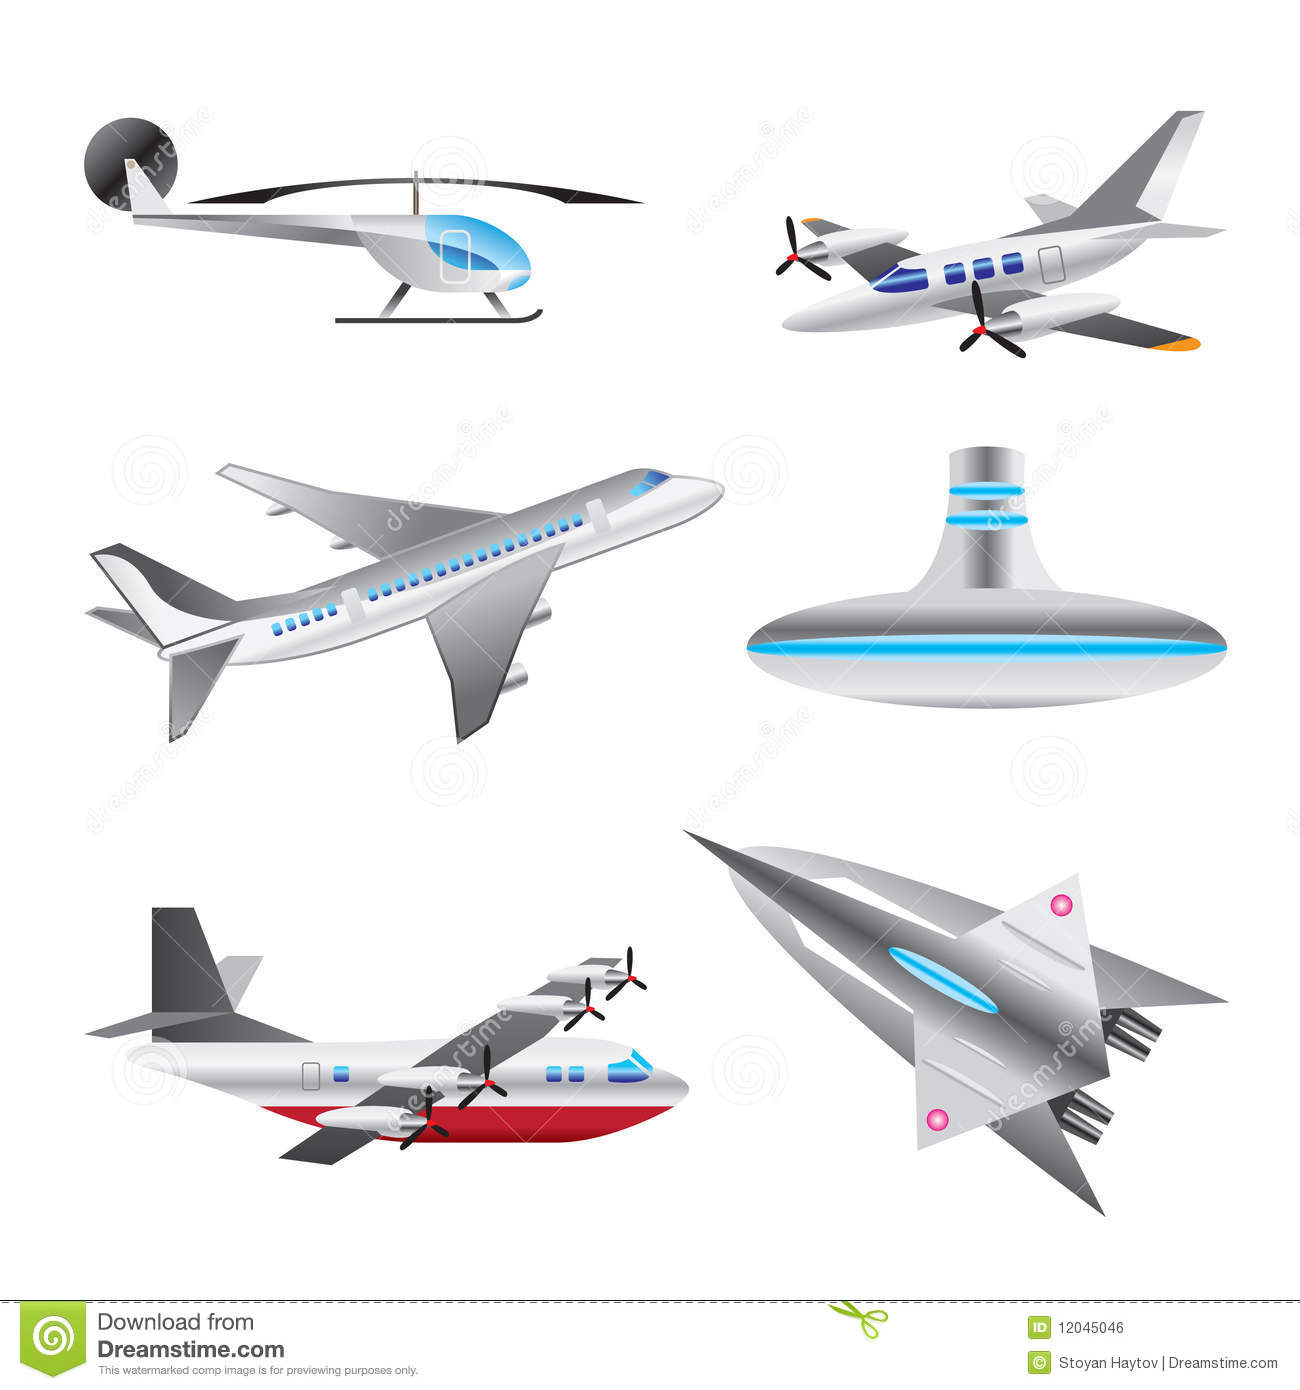 Different Types Of Aircraft Illustrations Royalty Free ... - photo#17